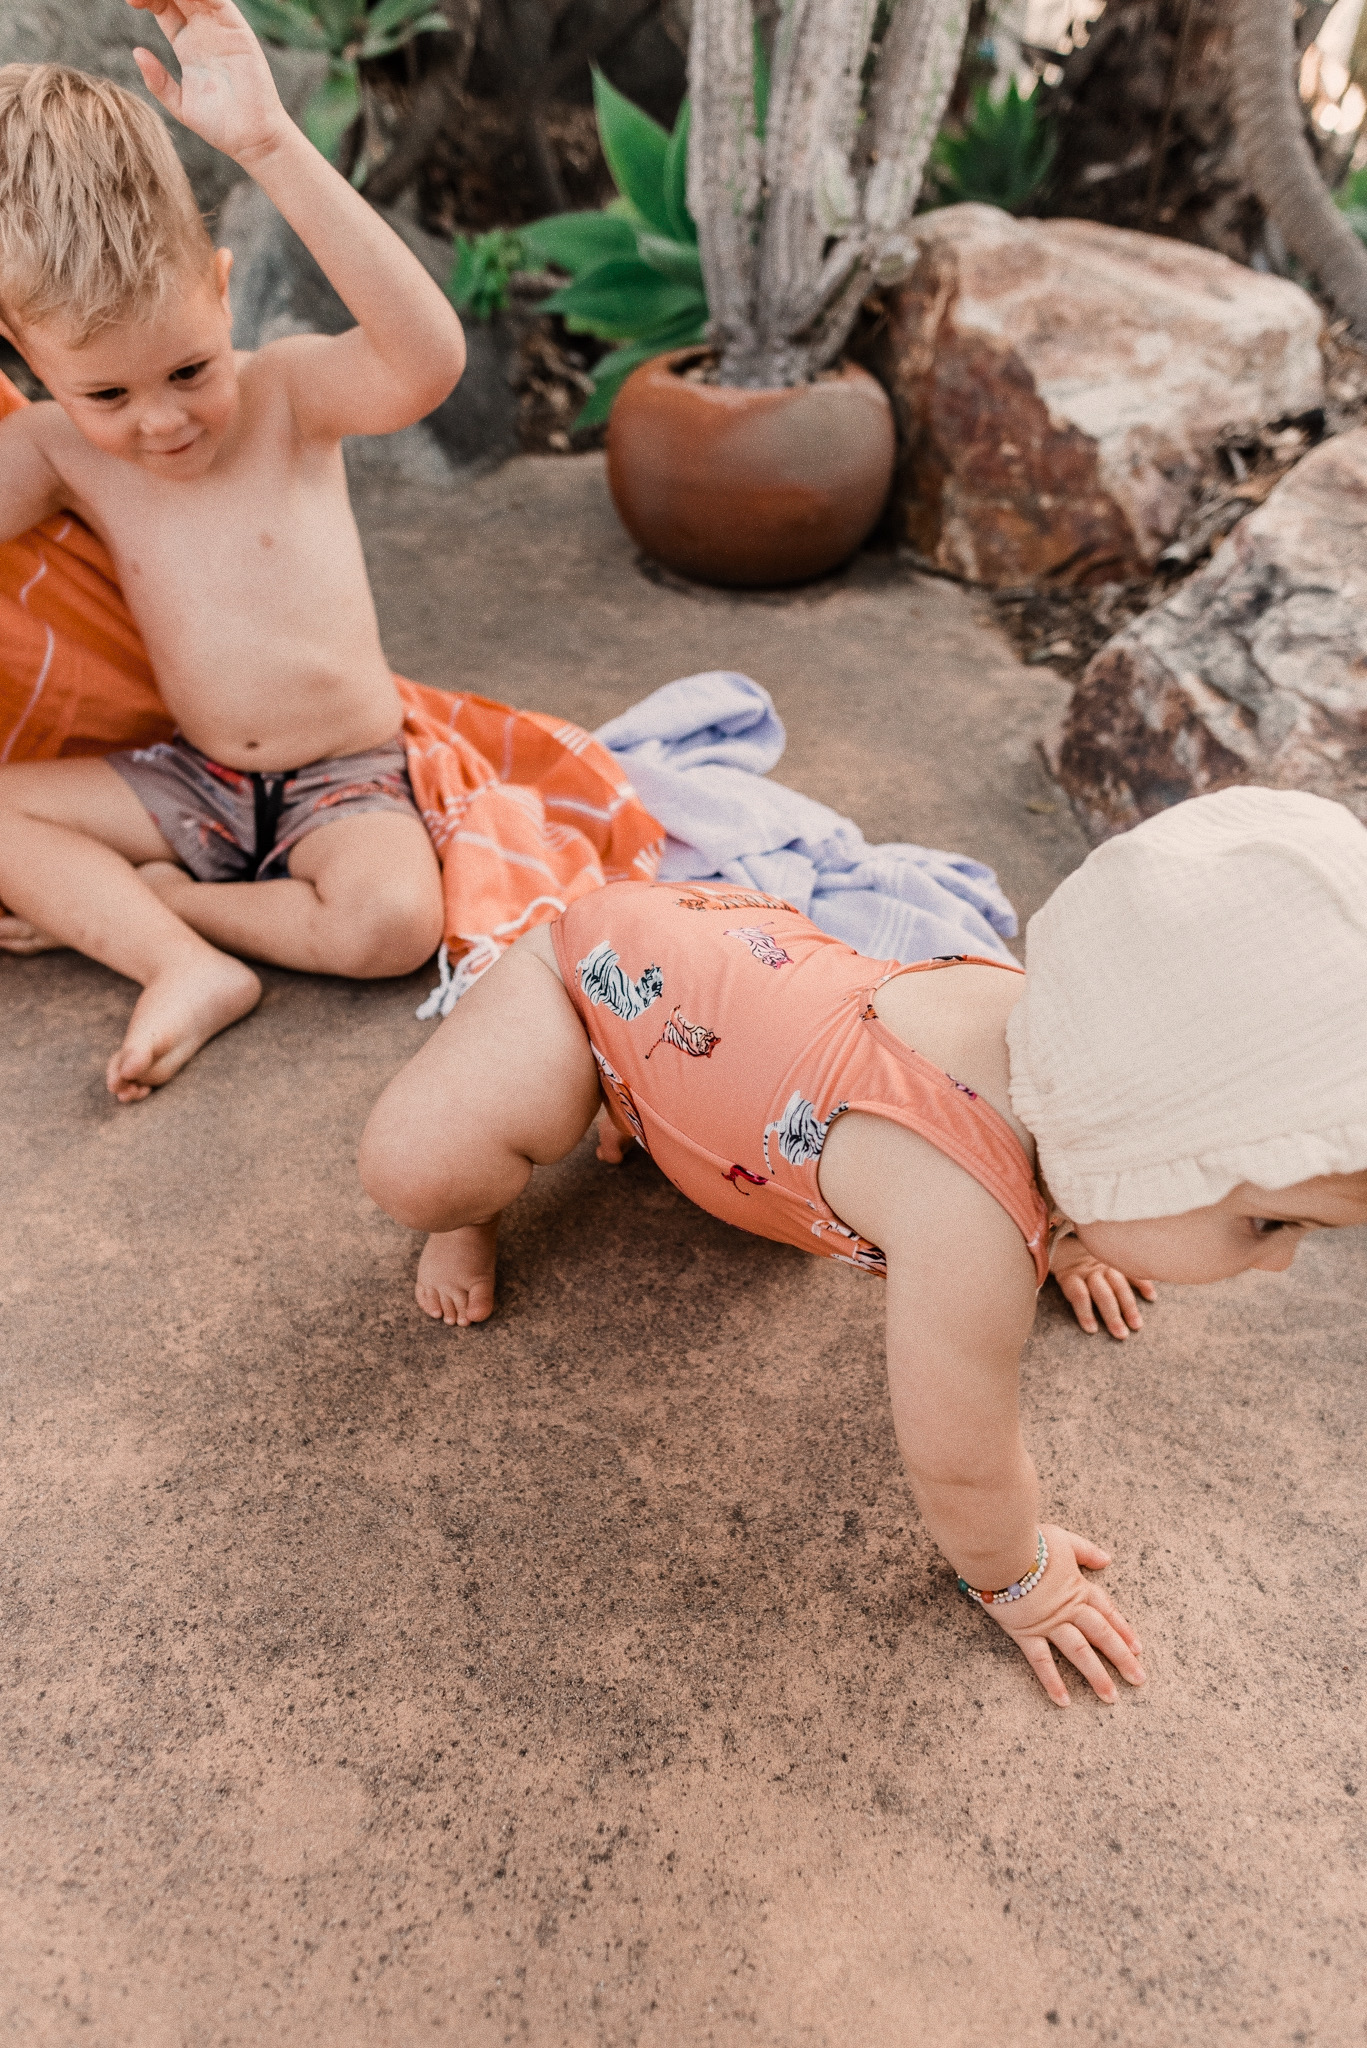 Kids Swimsuits by popular San Diego fashion blog, Navy Grace: image of a little boy wearing a tiger print swimsuit and a baby girl wearing a tiger print swimsuit and bonnet while they sit together on their Turkish towels.